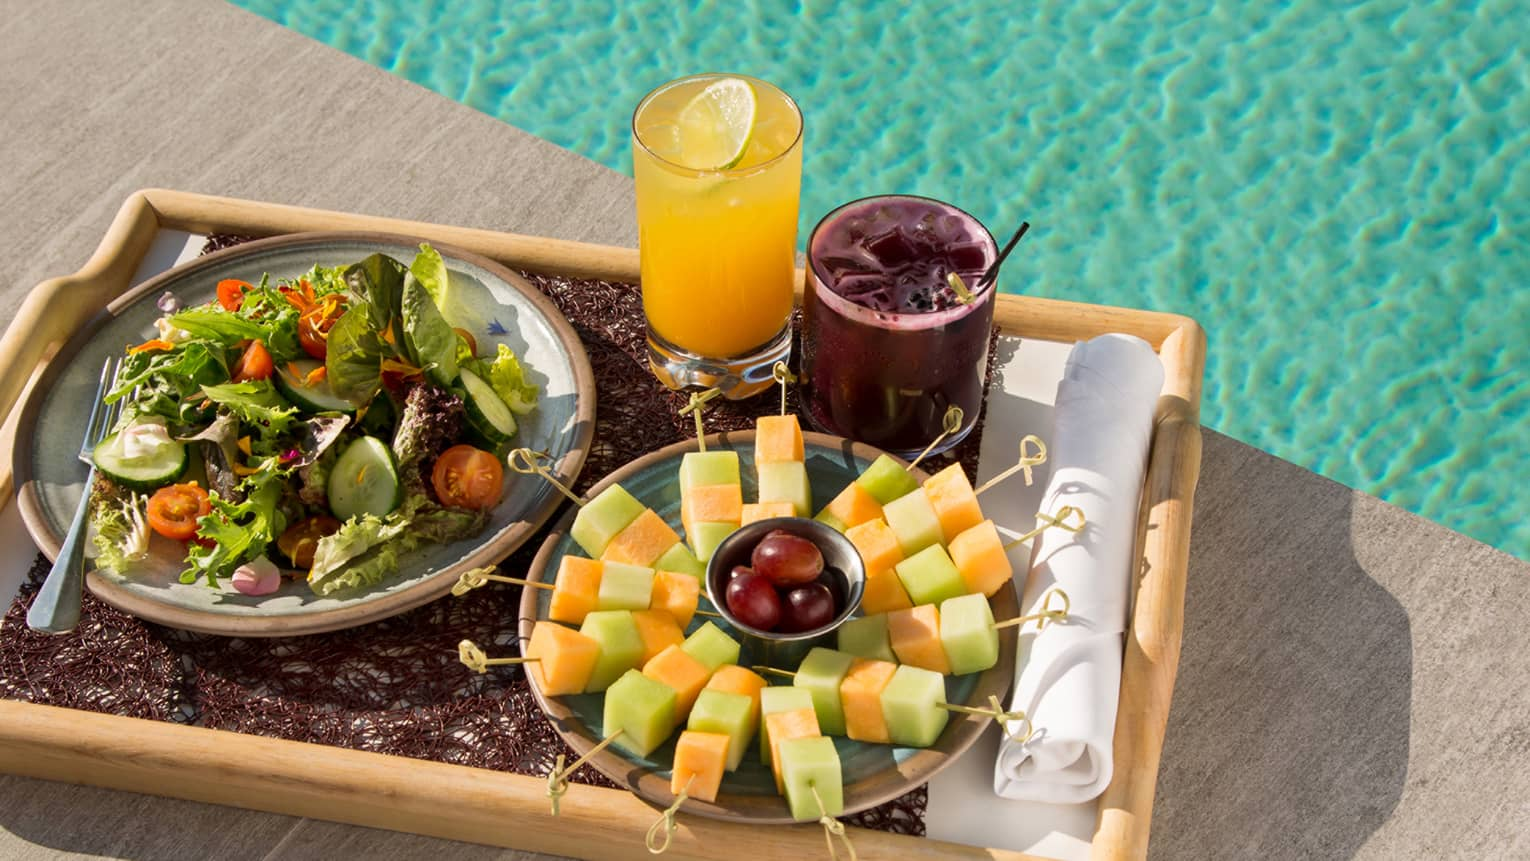 Tray with fresh fruit skewers, fresh salad, juices on tray beside swimming pool